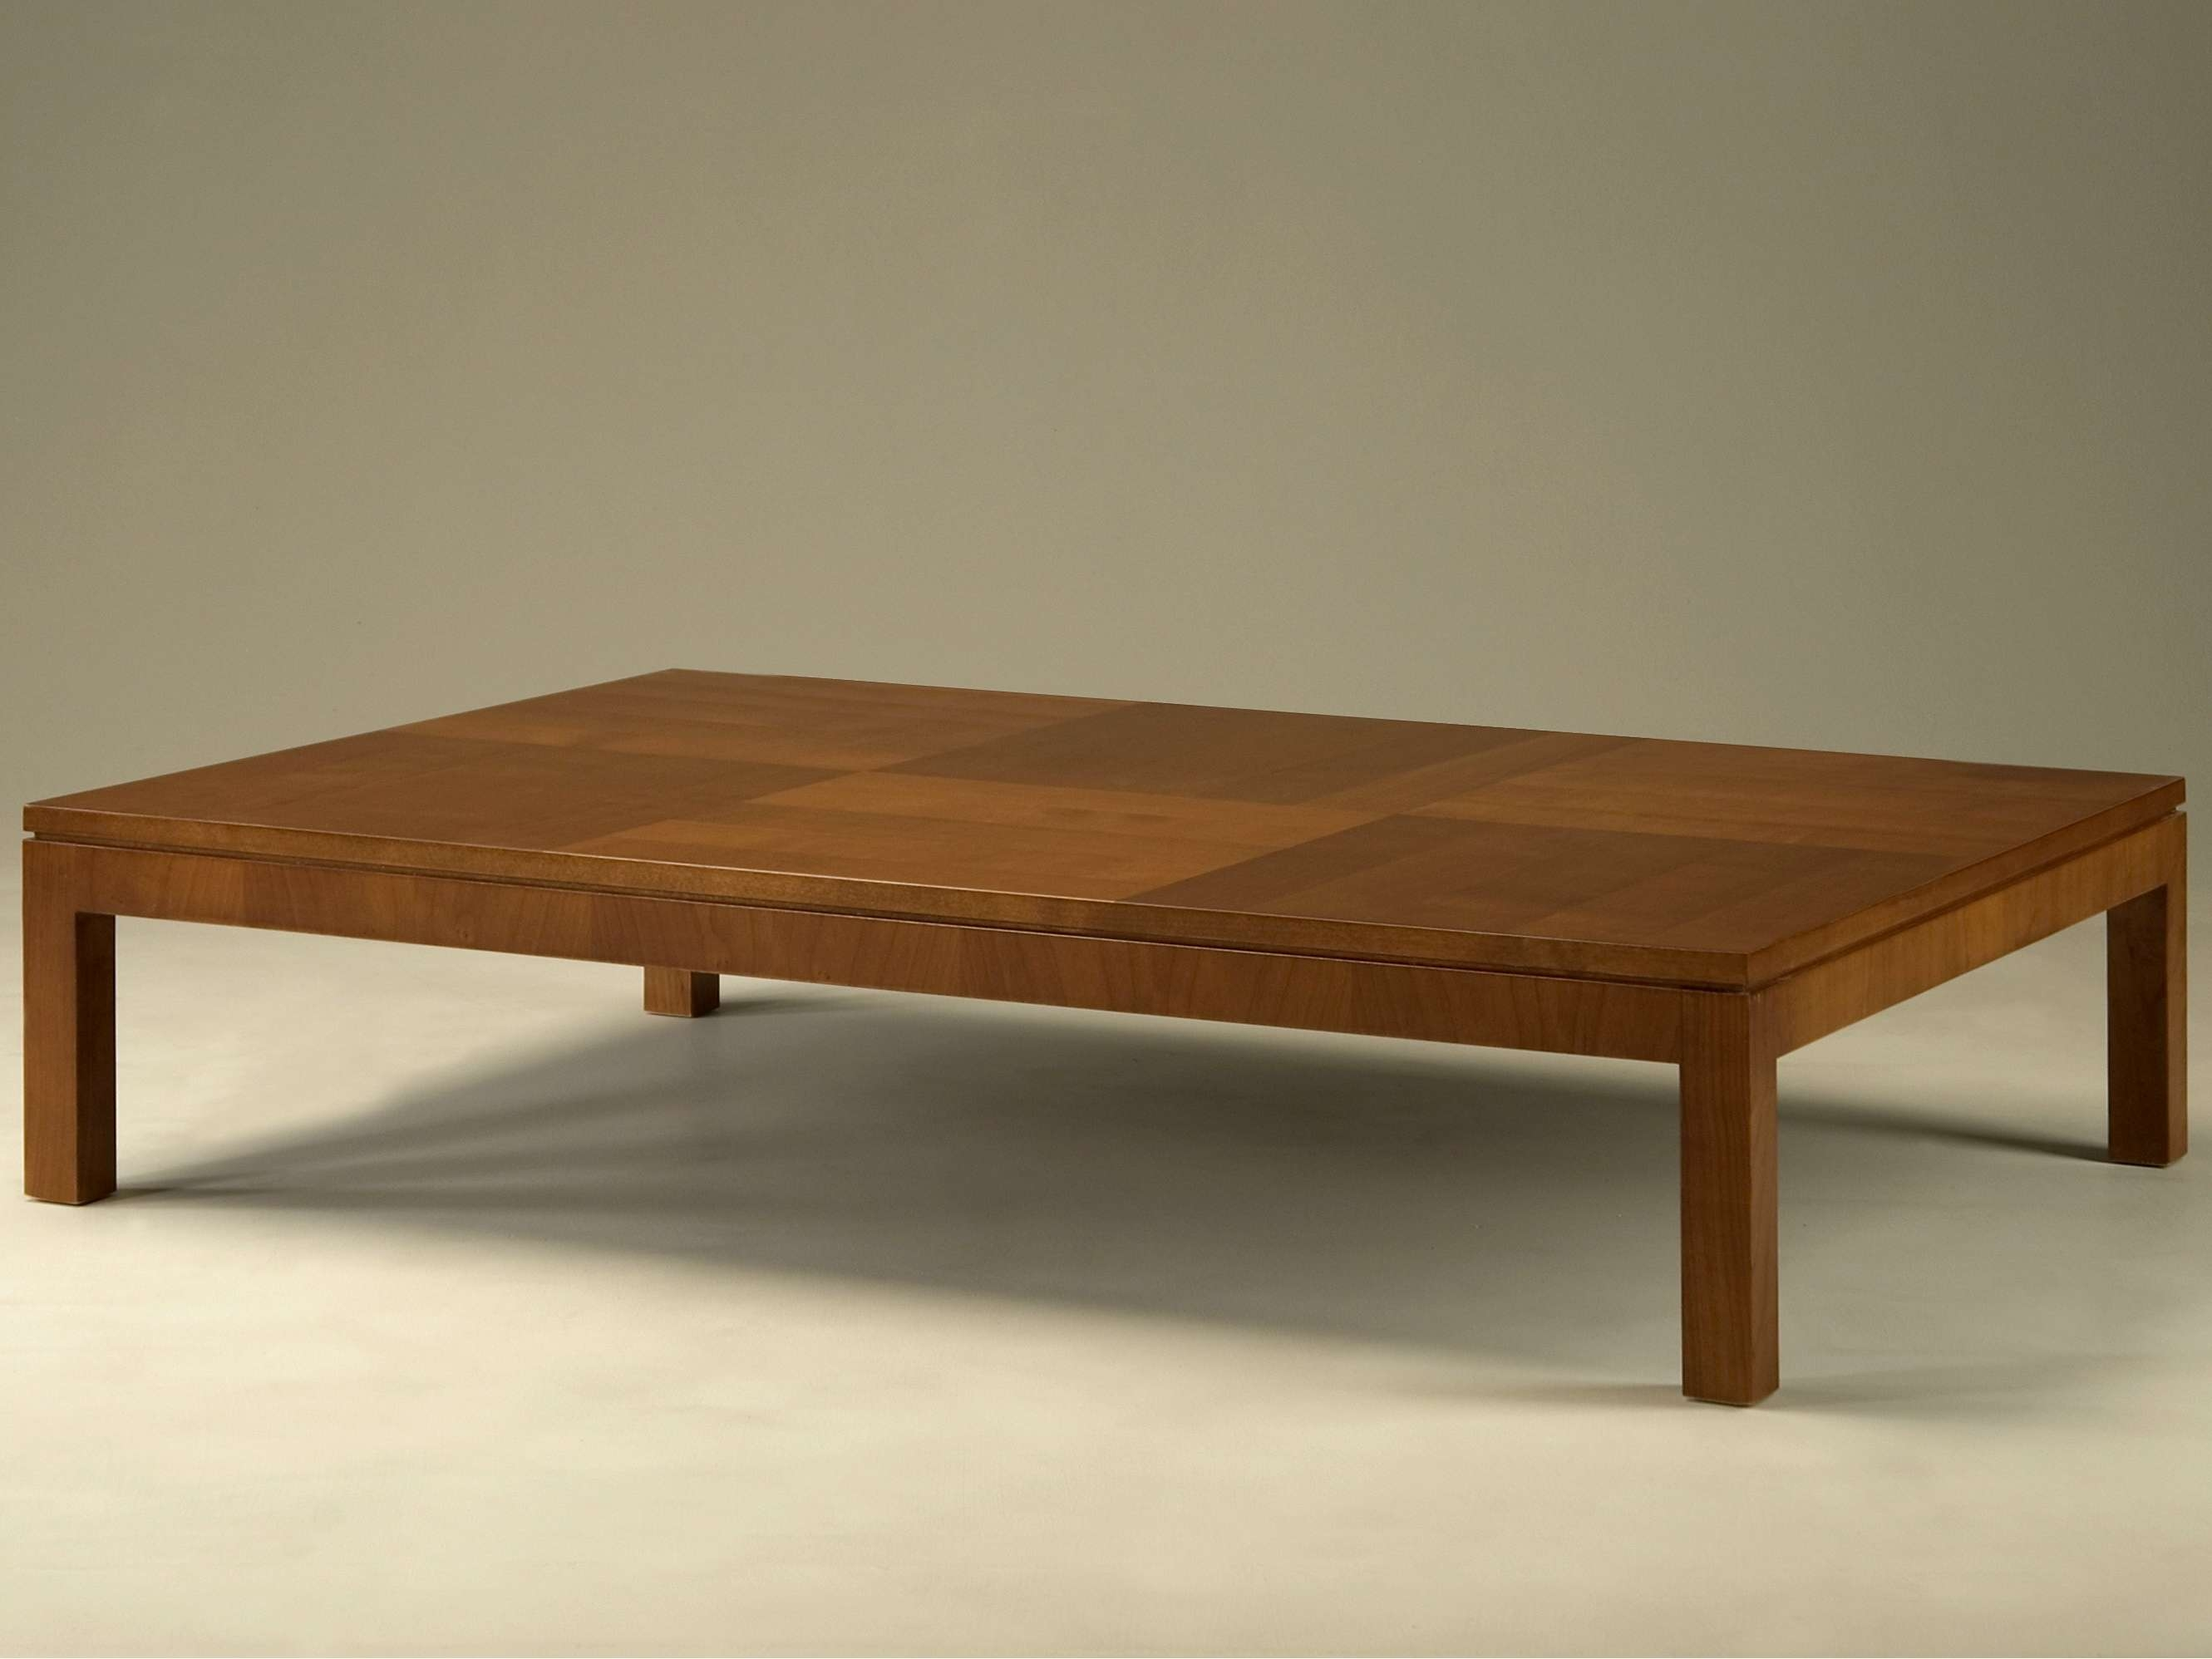 2018 best of low square wooden coffee tables for Low coffee table wood